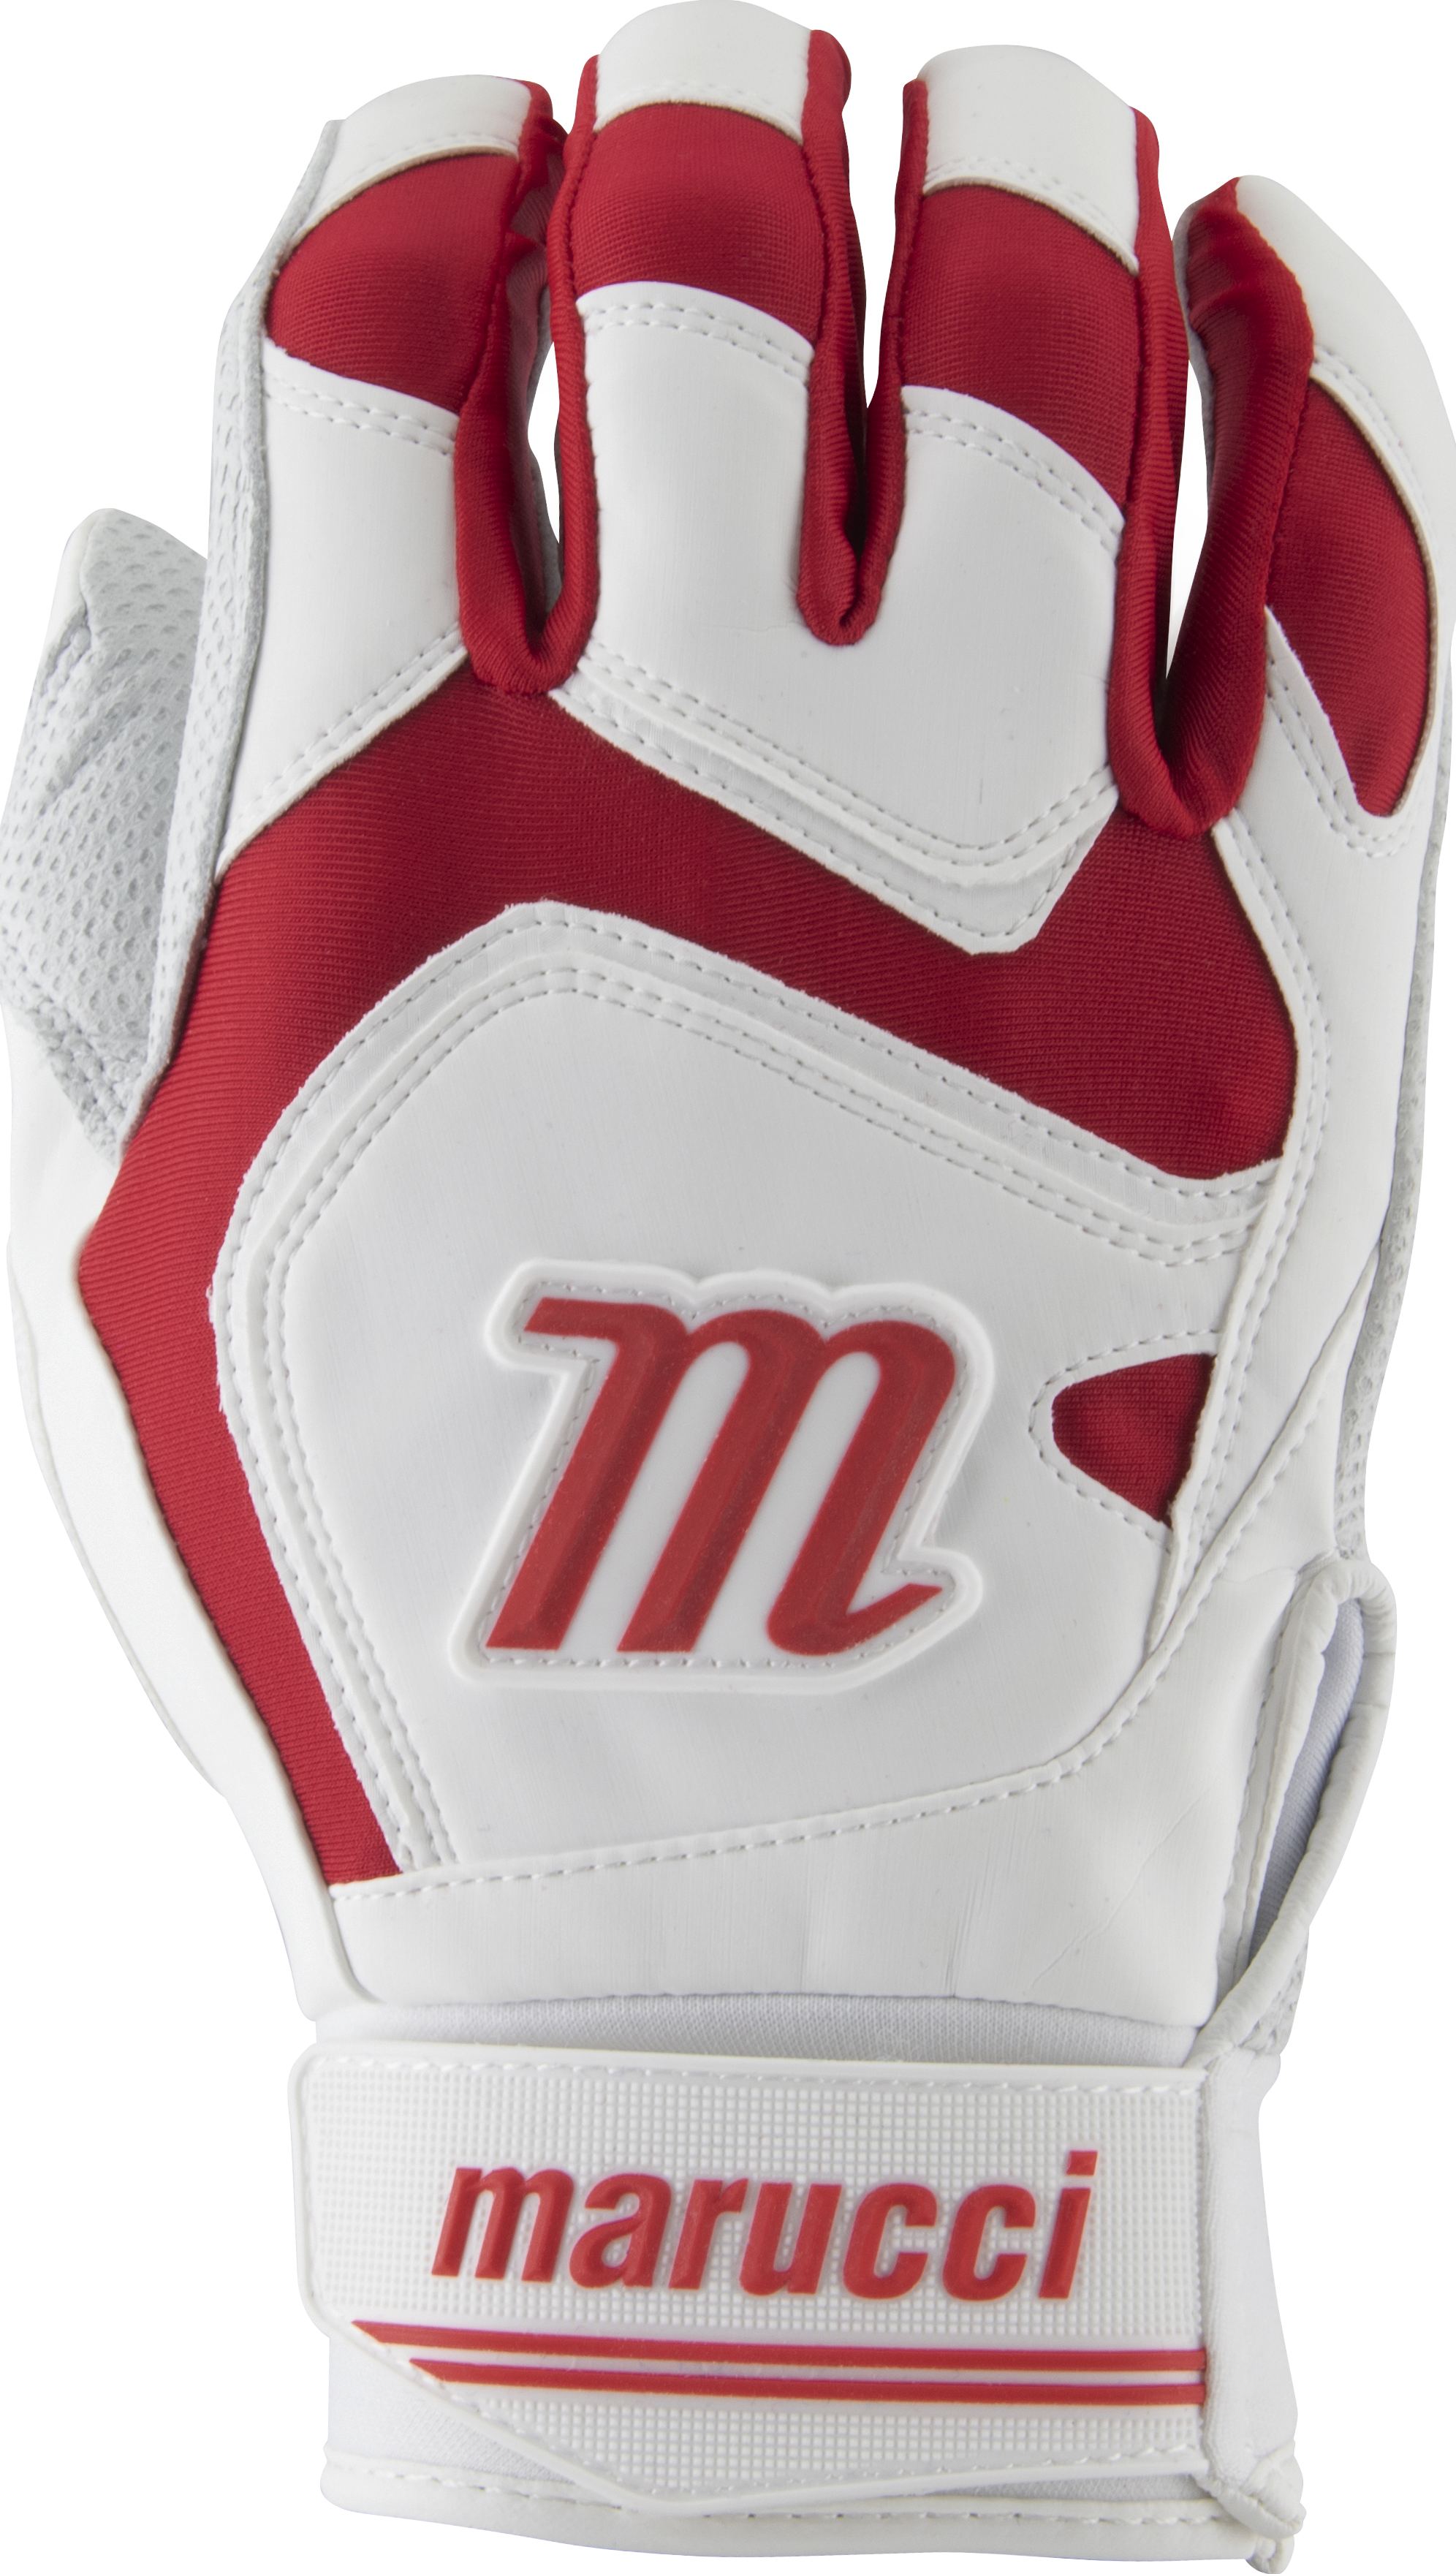 marucci-signature-batting-gloves-mbgsgn2-1-pair-white-red-adult-x-large MBGSGN2-WR-AXL  849817096710 2019 Model MBGSGN2 Consistency And Craftsmanship Commitment To Quality And Understanding